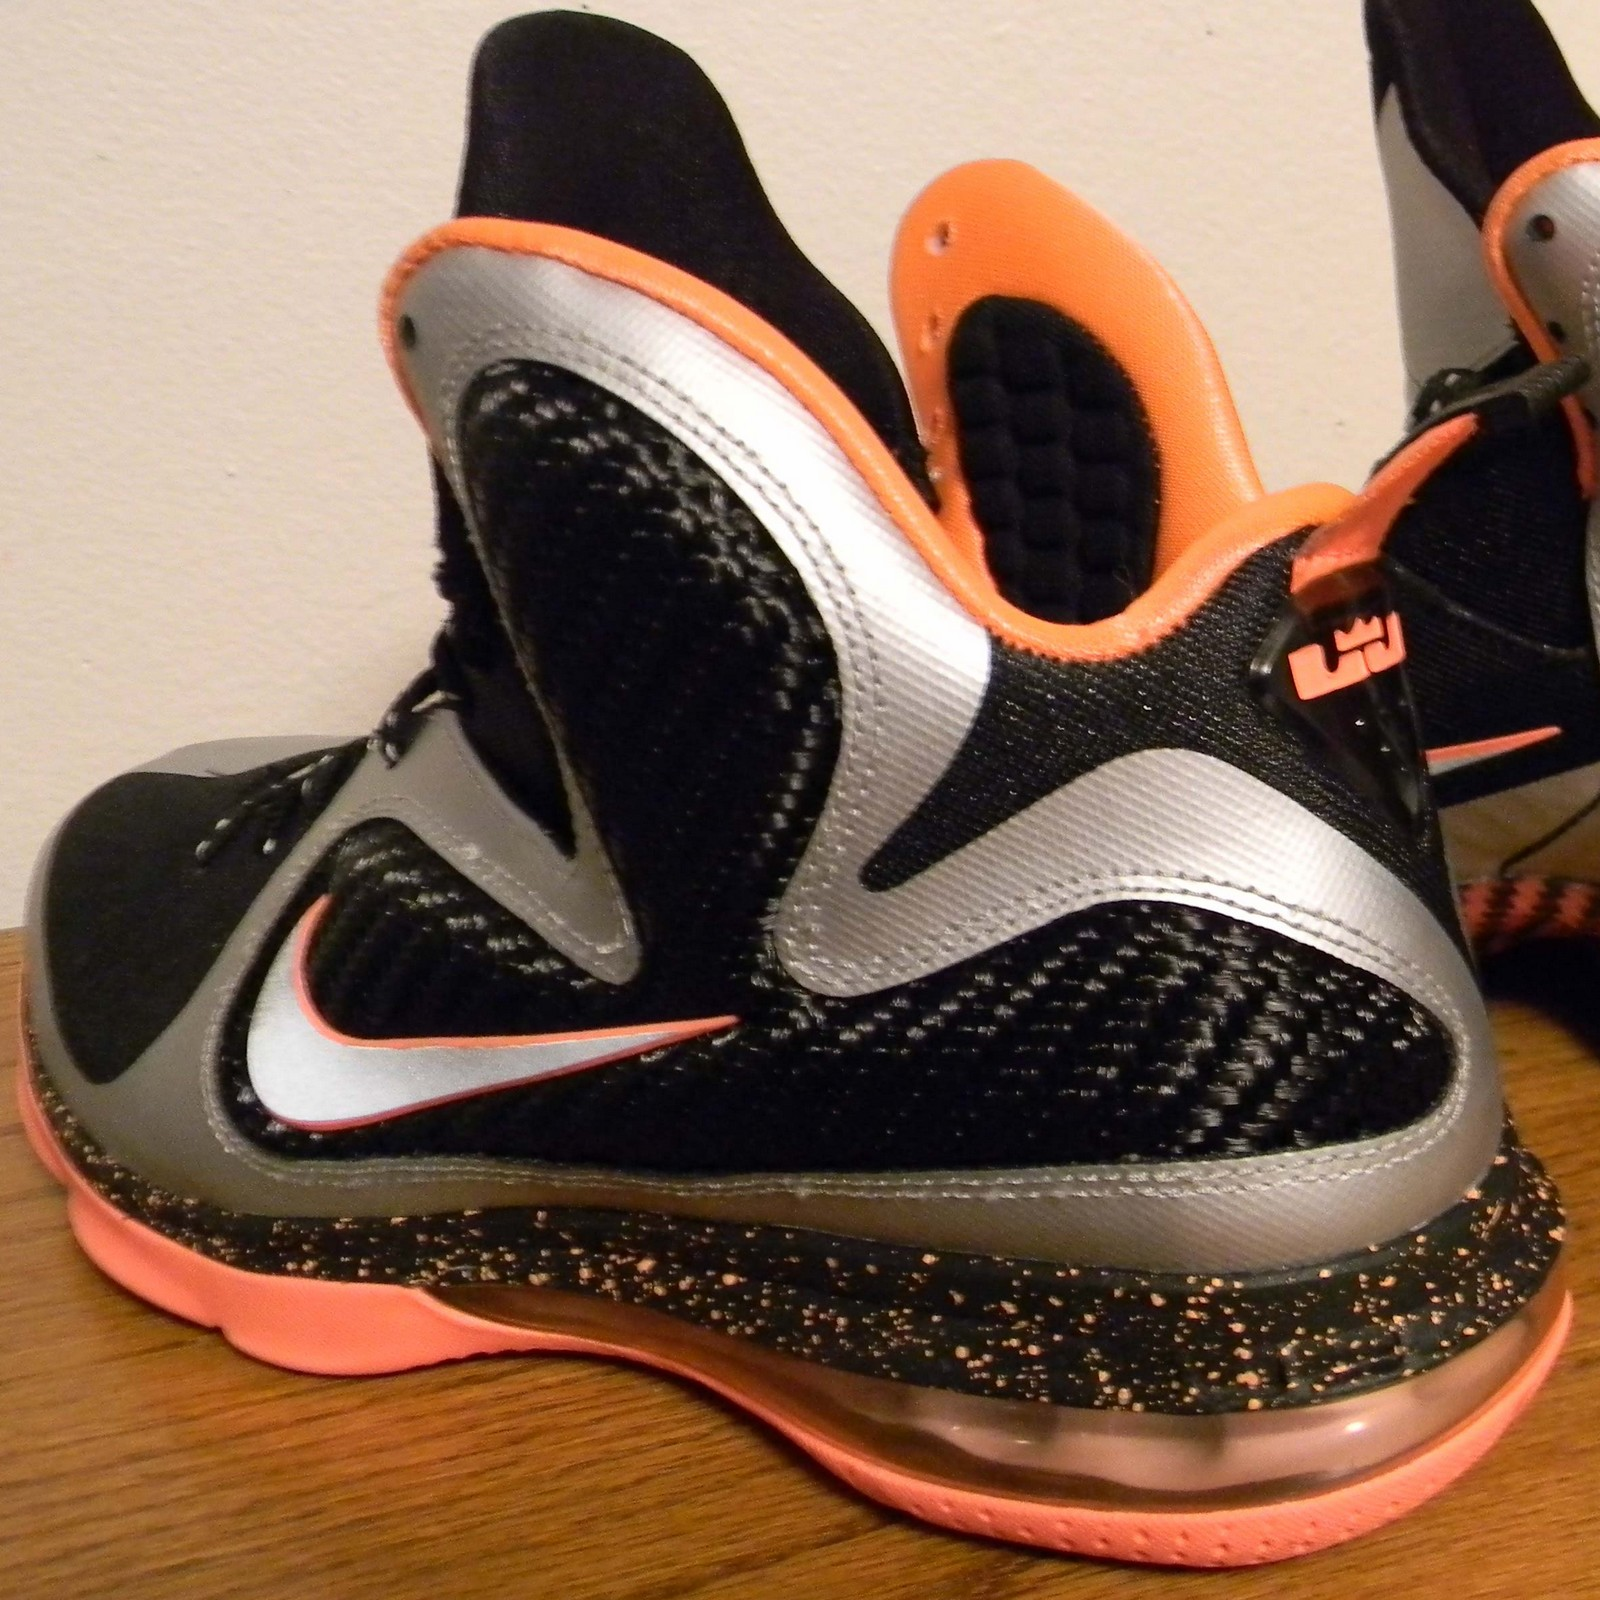 best service 179e3 0d707 Nike LeBron 9. Color  Black Metallic Silver-Bright Mango Style  469764-005.  Release  03 02 12. Price   170.00